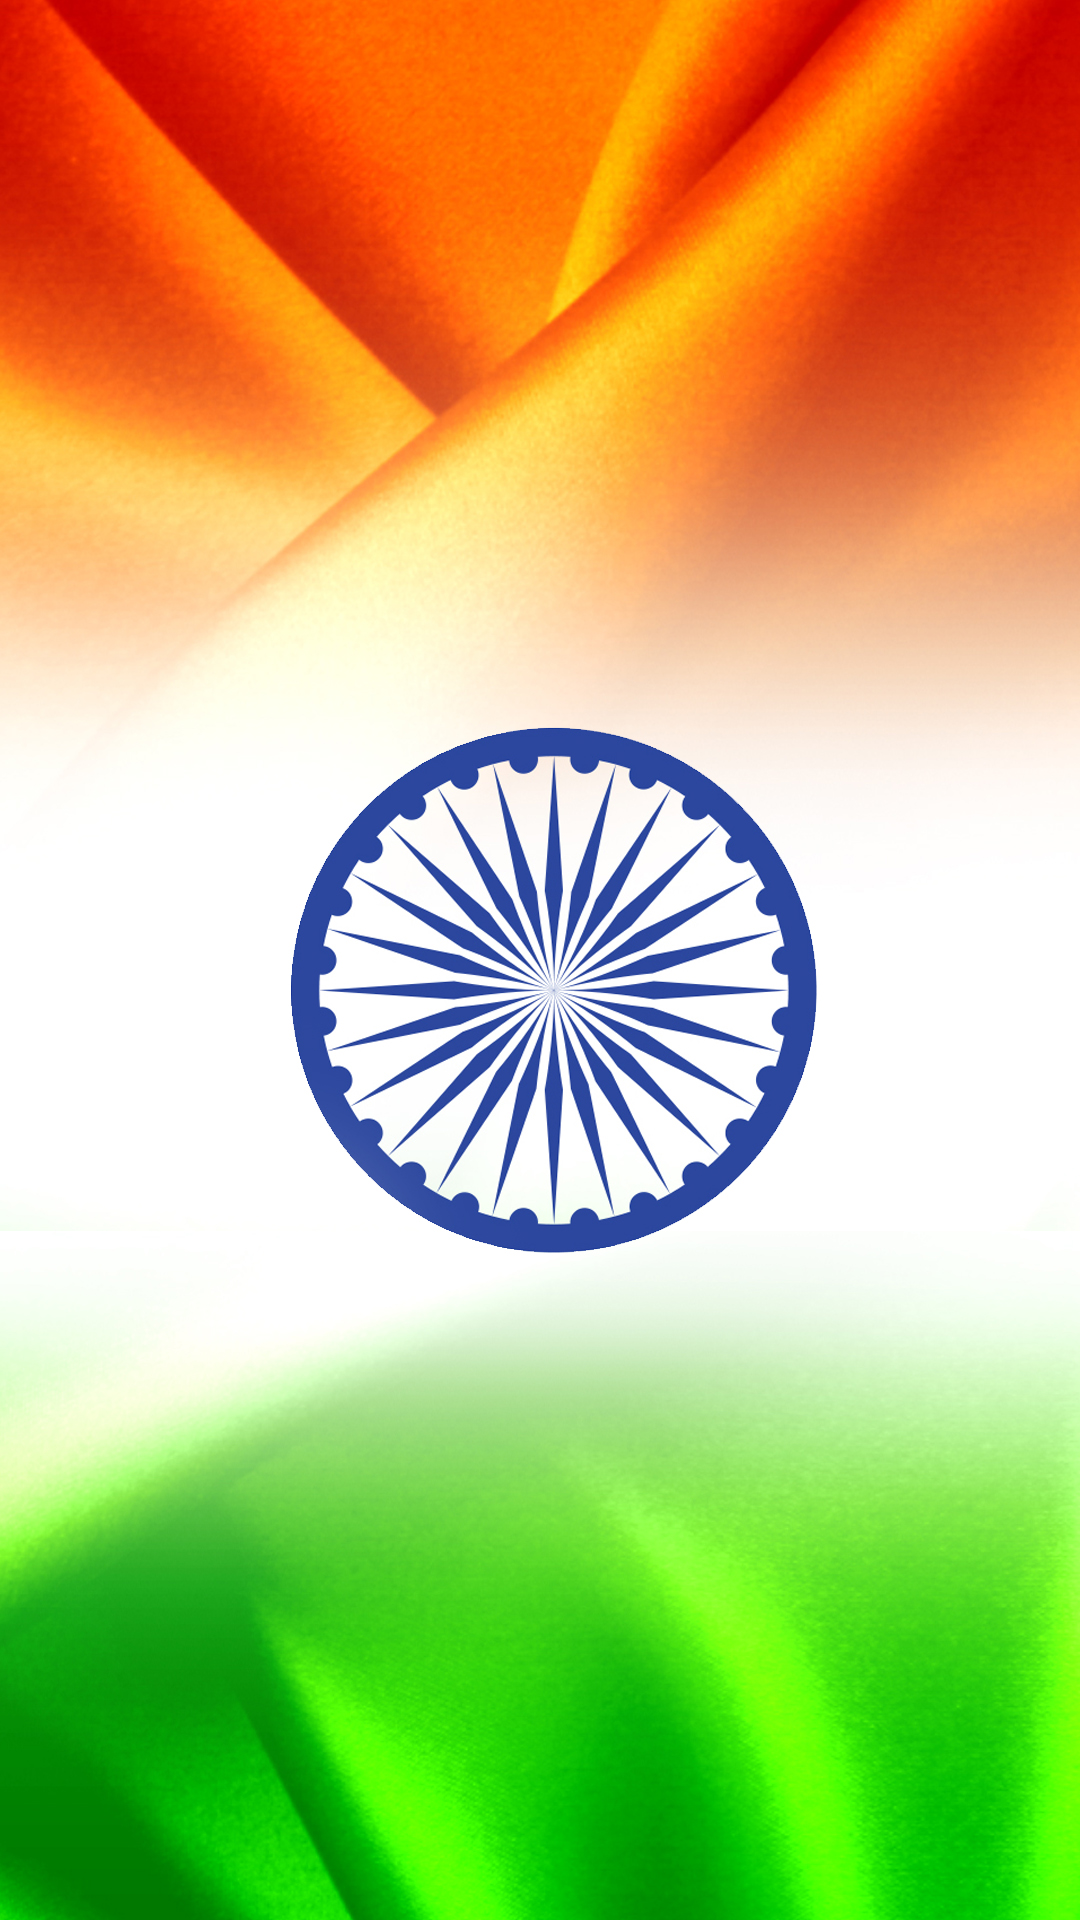 India Wallpaper For Mobile